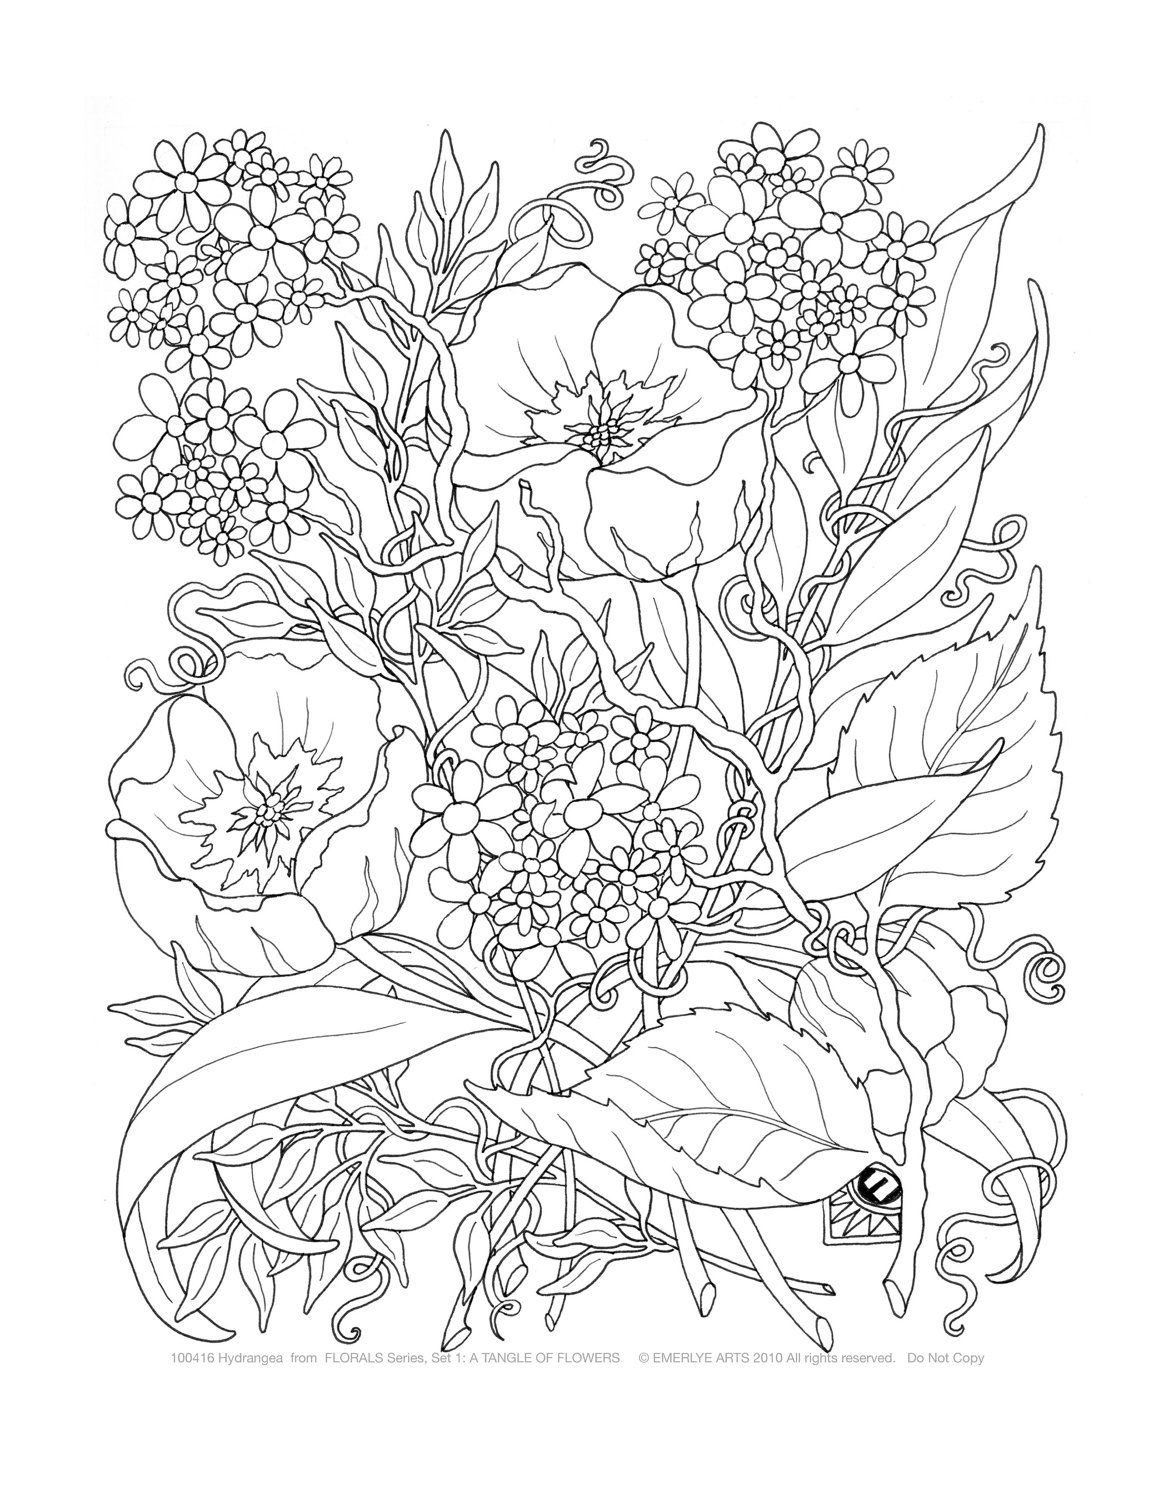 Coloring pages for adults printable coloring pages for adults free coloring pages for adults online coloring pages for adults for adults teenagers kids